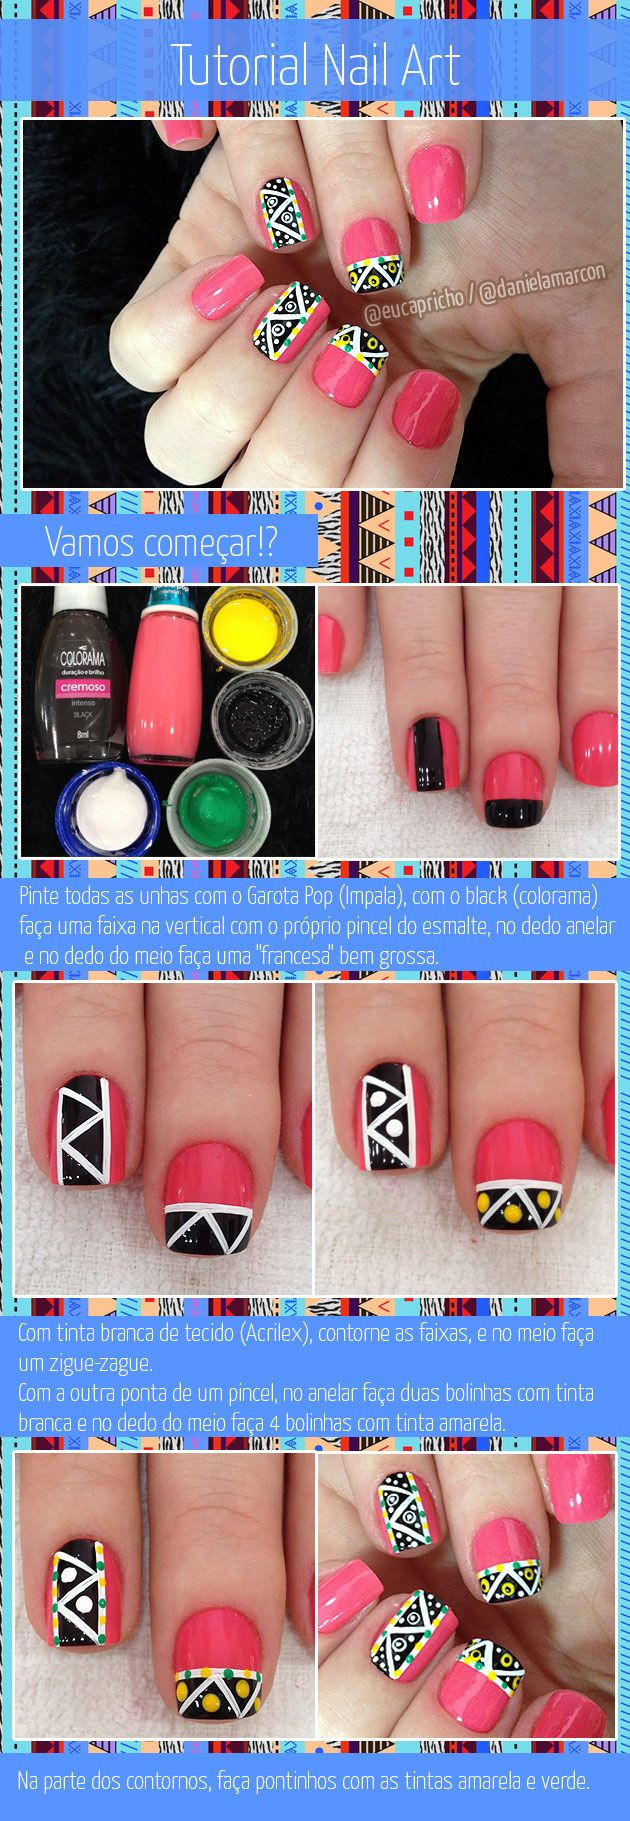 Nail Art - Eu Capricho | Eu Capricho / Tutorial de unha decorada tribal